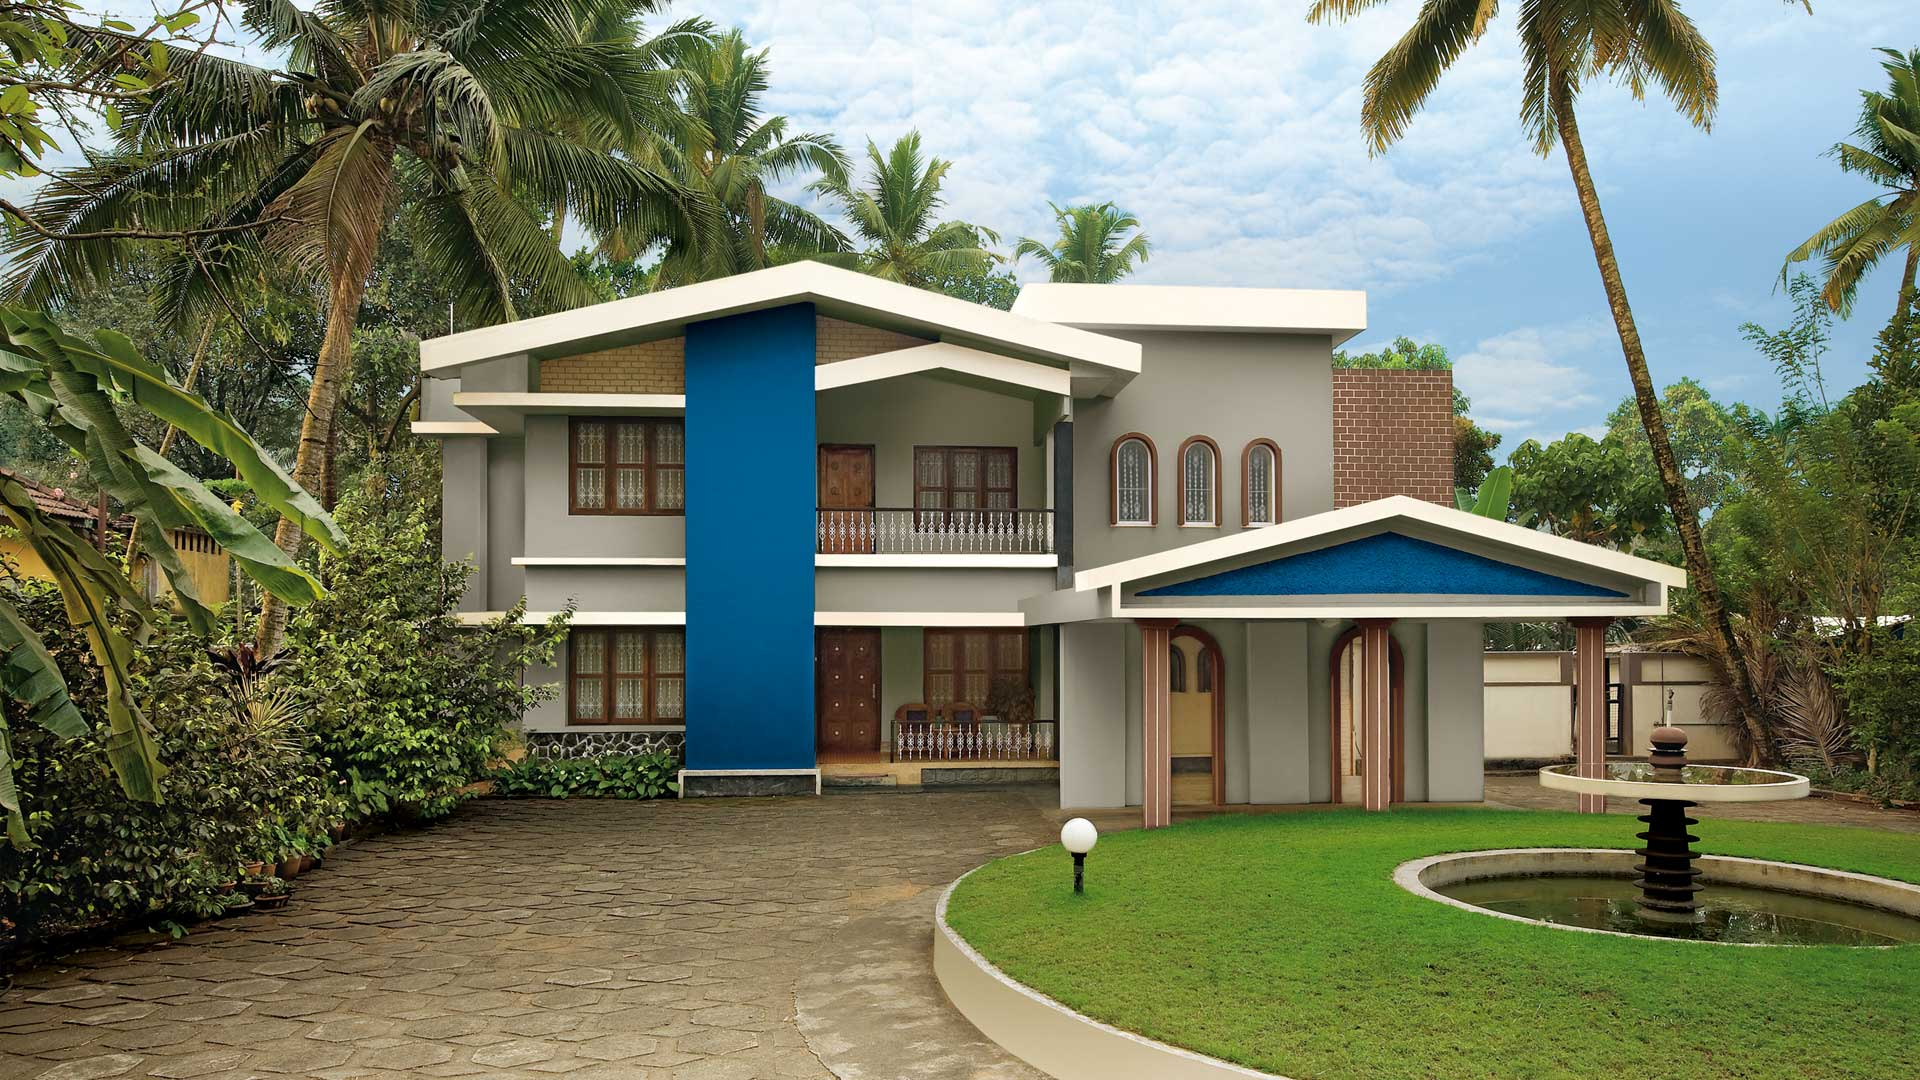 Colour Combination For House Exterior Painting And Get Services Near Your Location By V S Painters